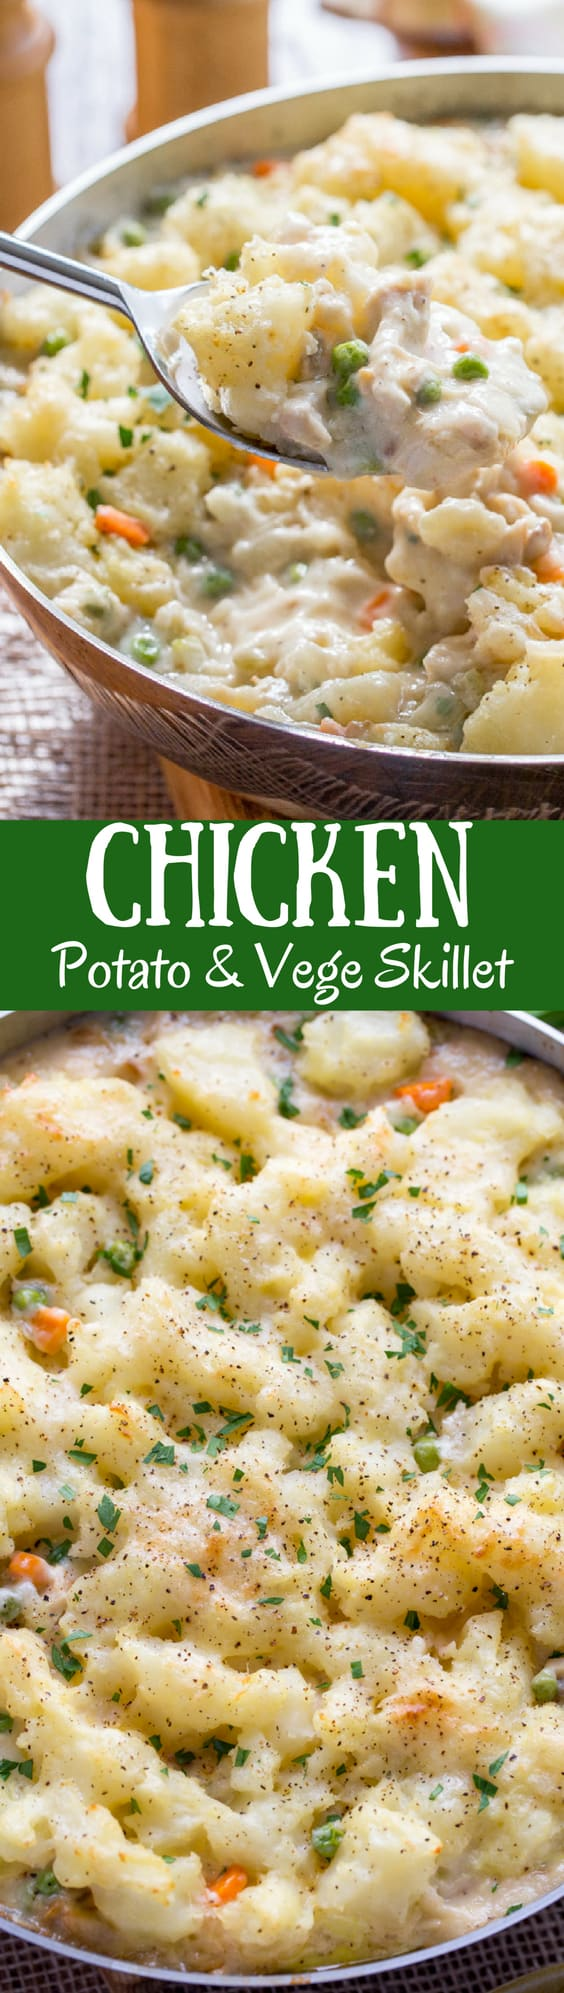 Skillet Chicken with Potatoes & Vegetables ~ comfort at it's best! A creamy sauce that reminds me of a pot pie with tender vegetables, and chunks of chicken topped with fluffy potatoes just like Shepherd's Pie! www.savingdessert.com